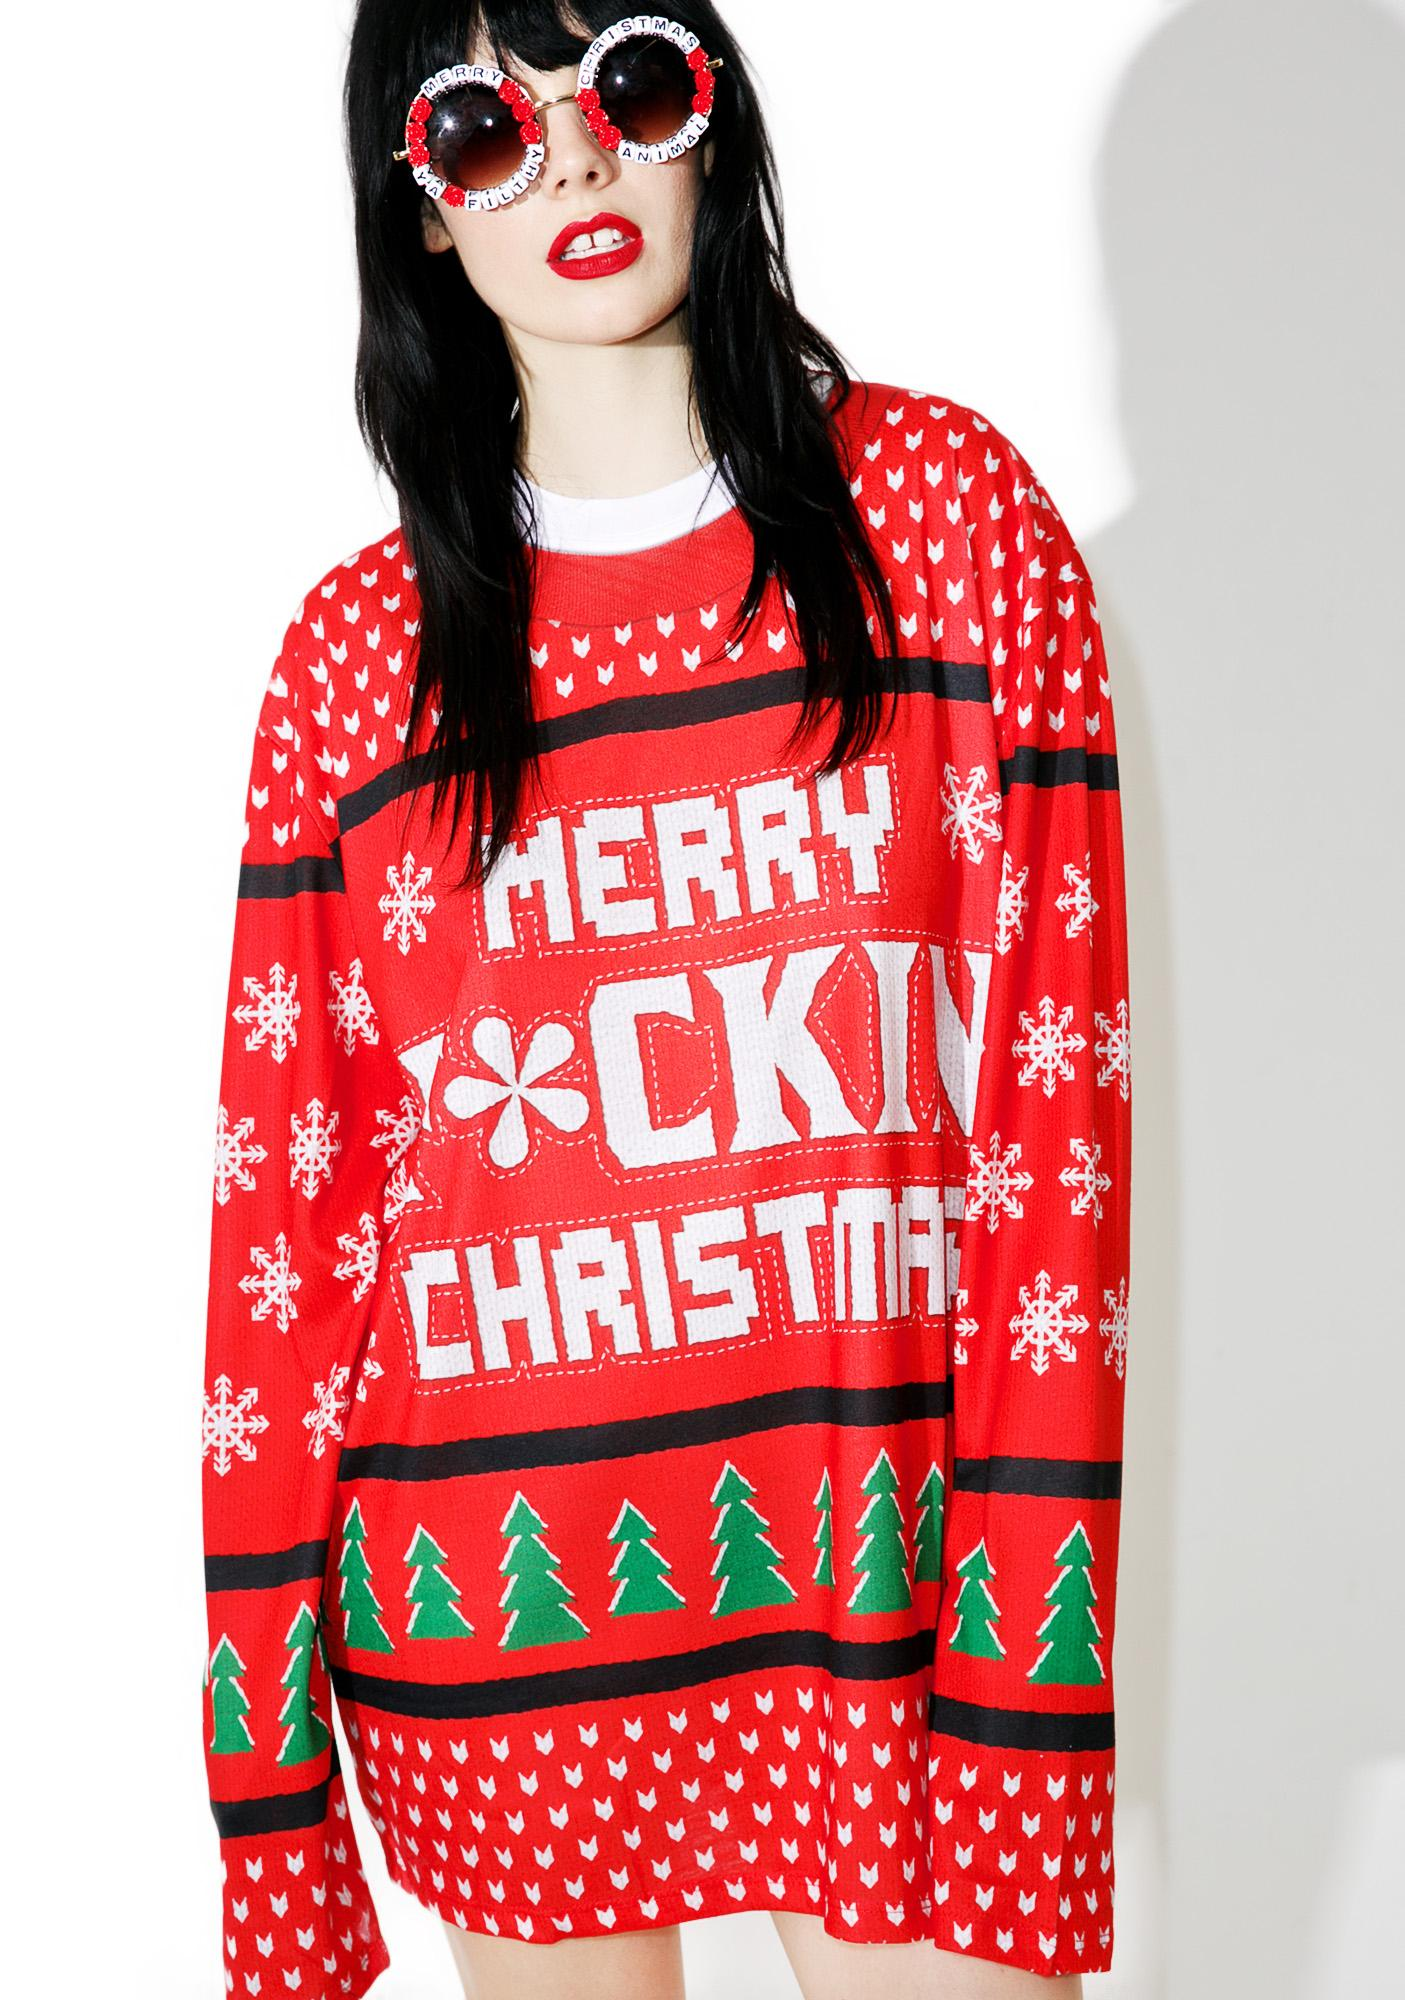 Merry F*ckin' Chistmas Sweater